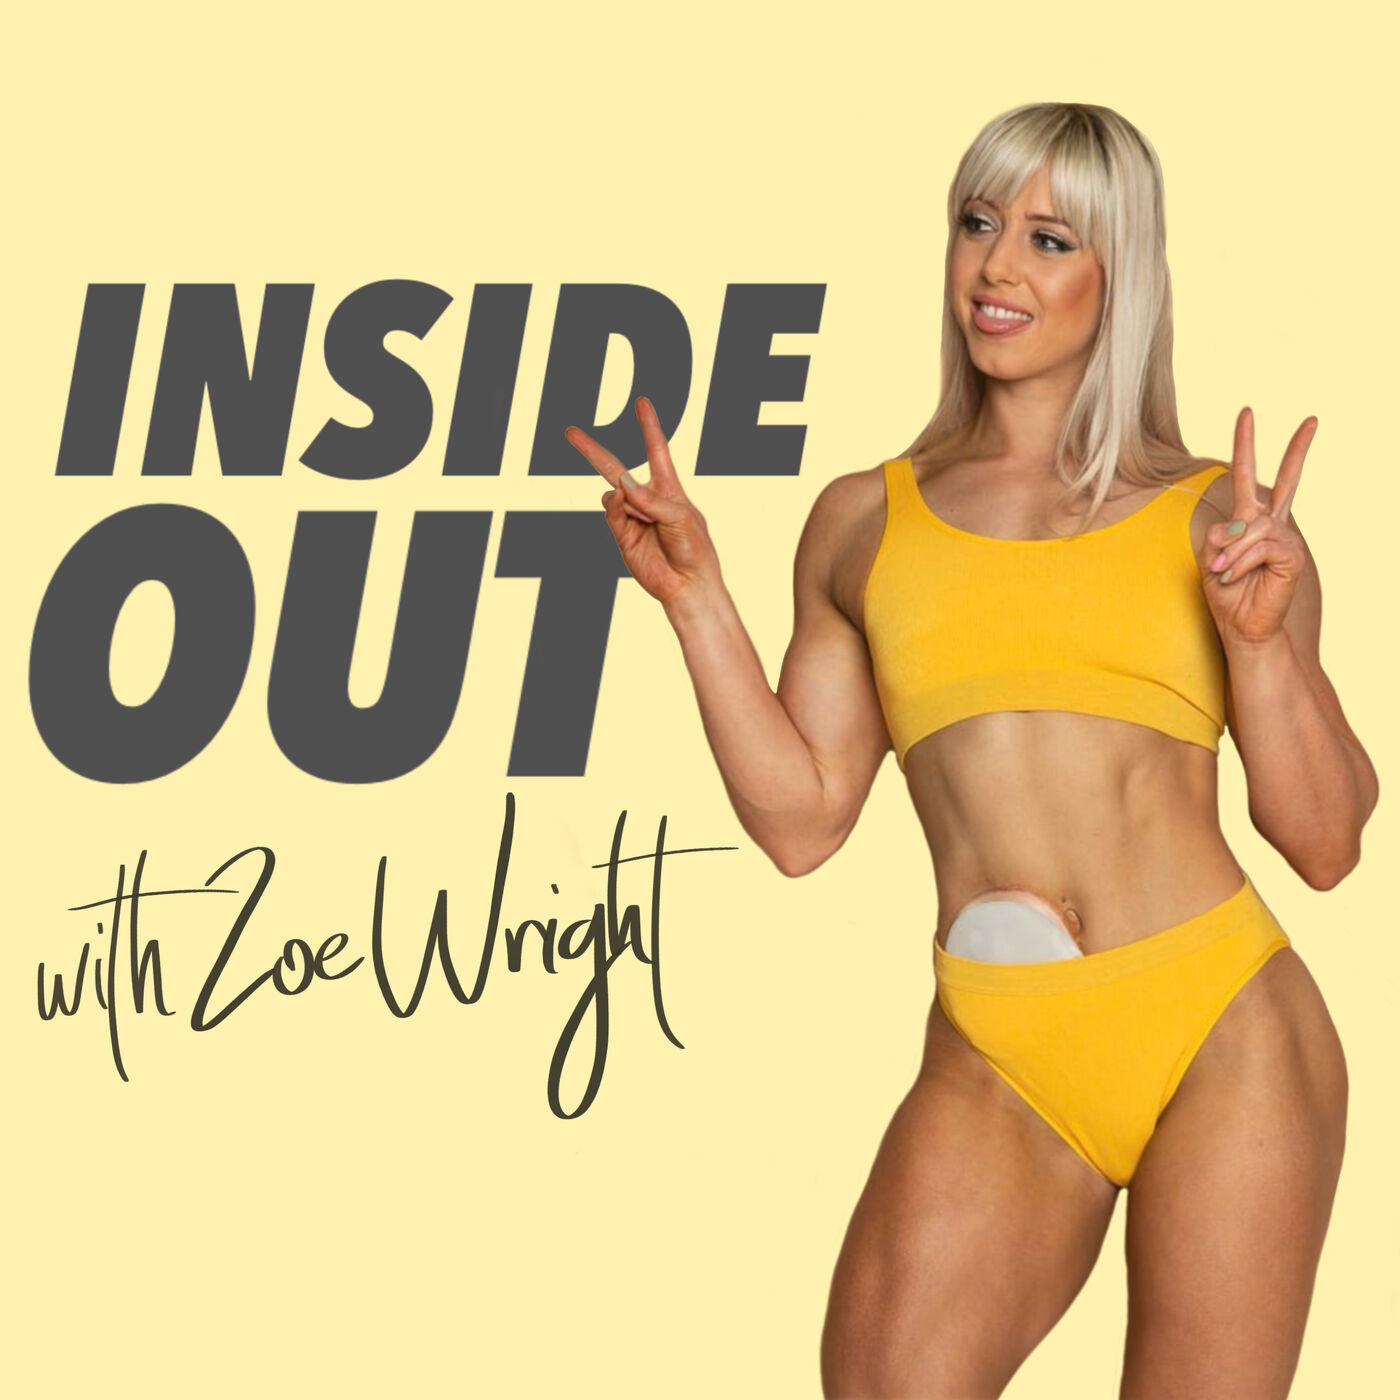 Inside Out with Zoe Wright; Journey to Fitness Model